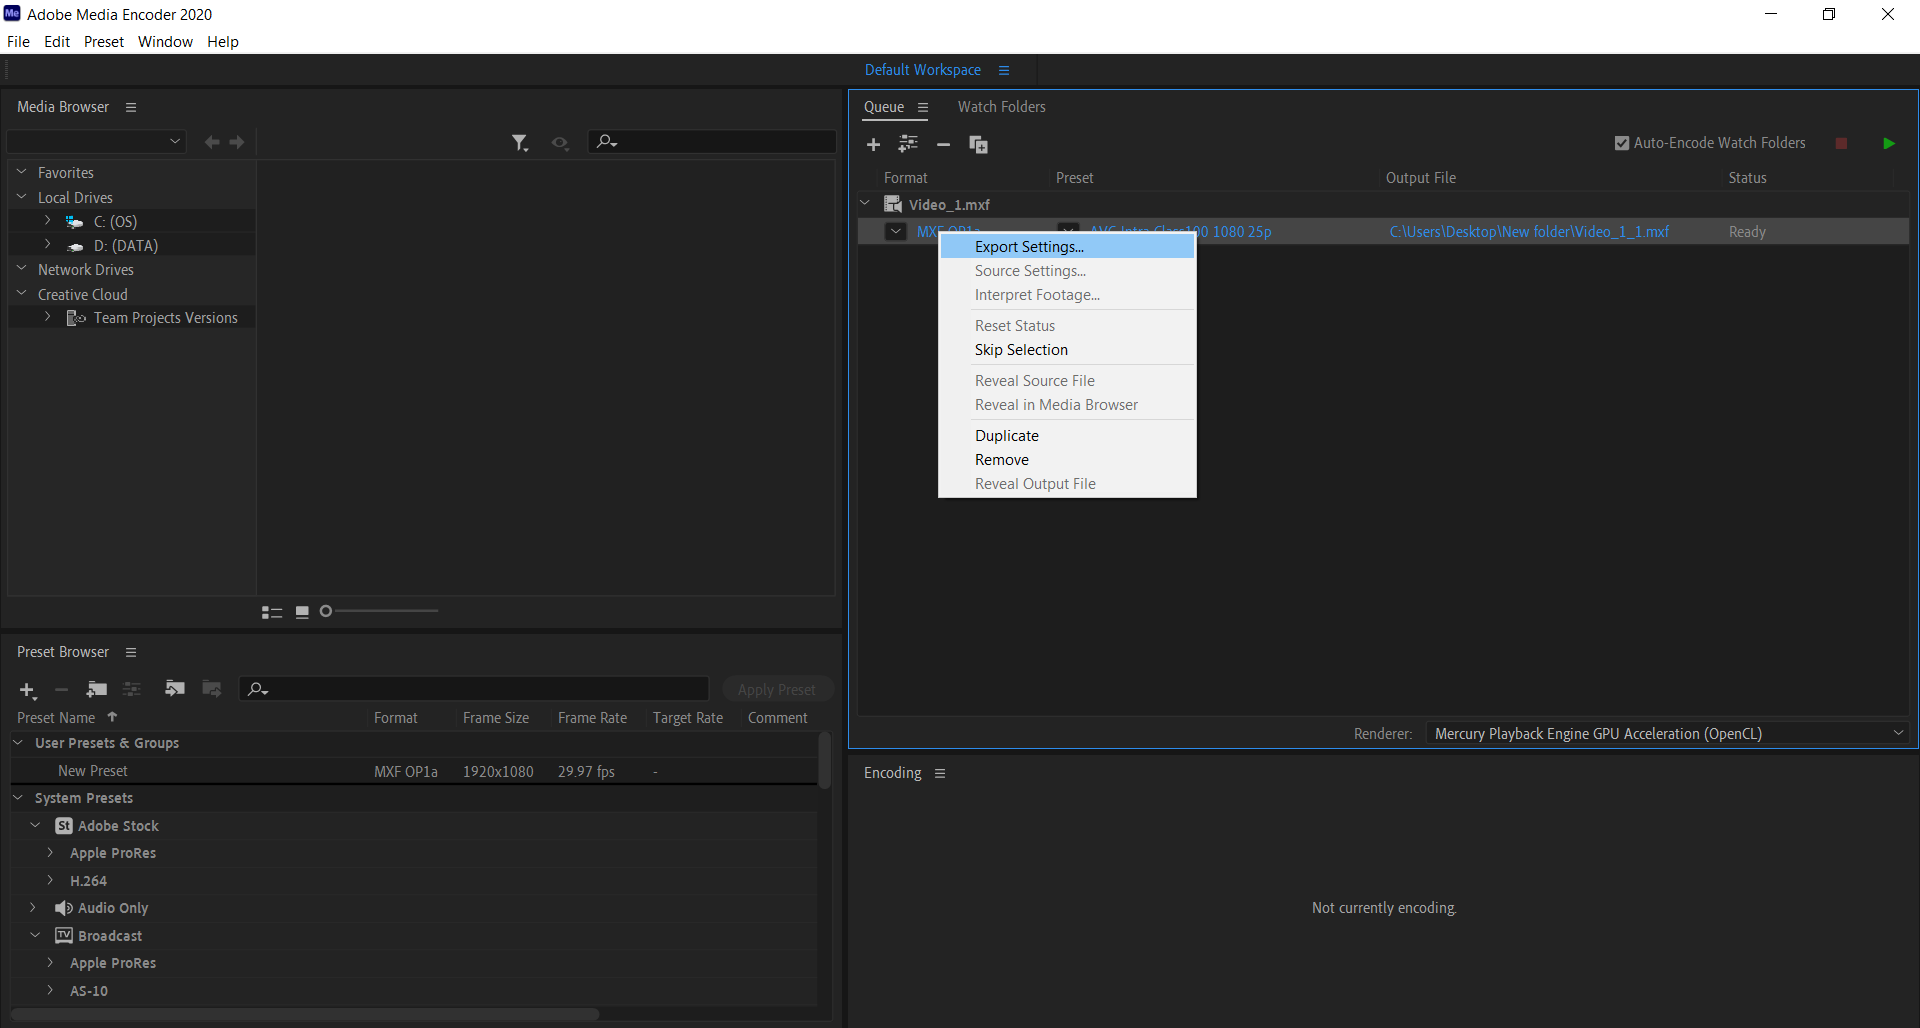 How to convert MXF to MP4 file using Adobe Media Encoder?